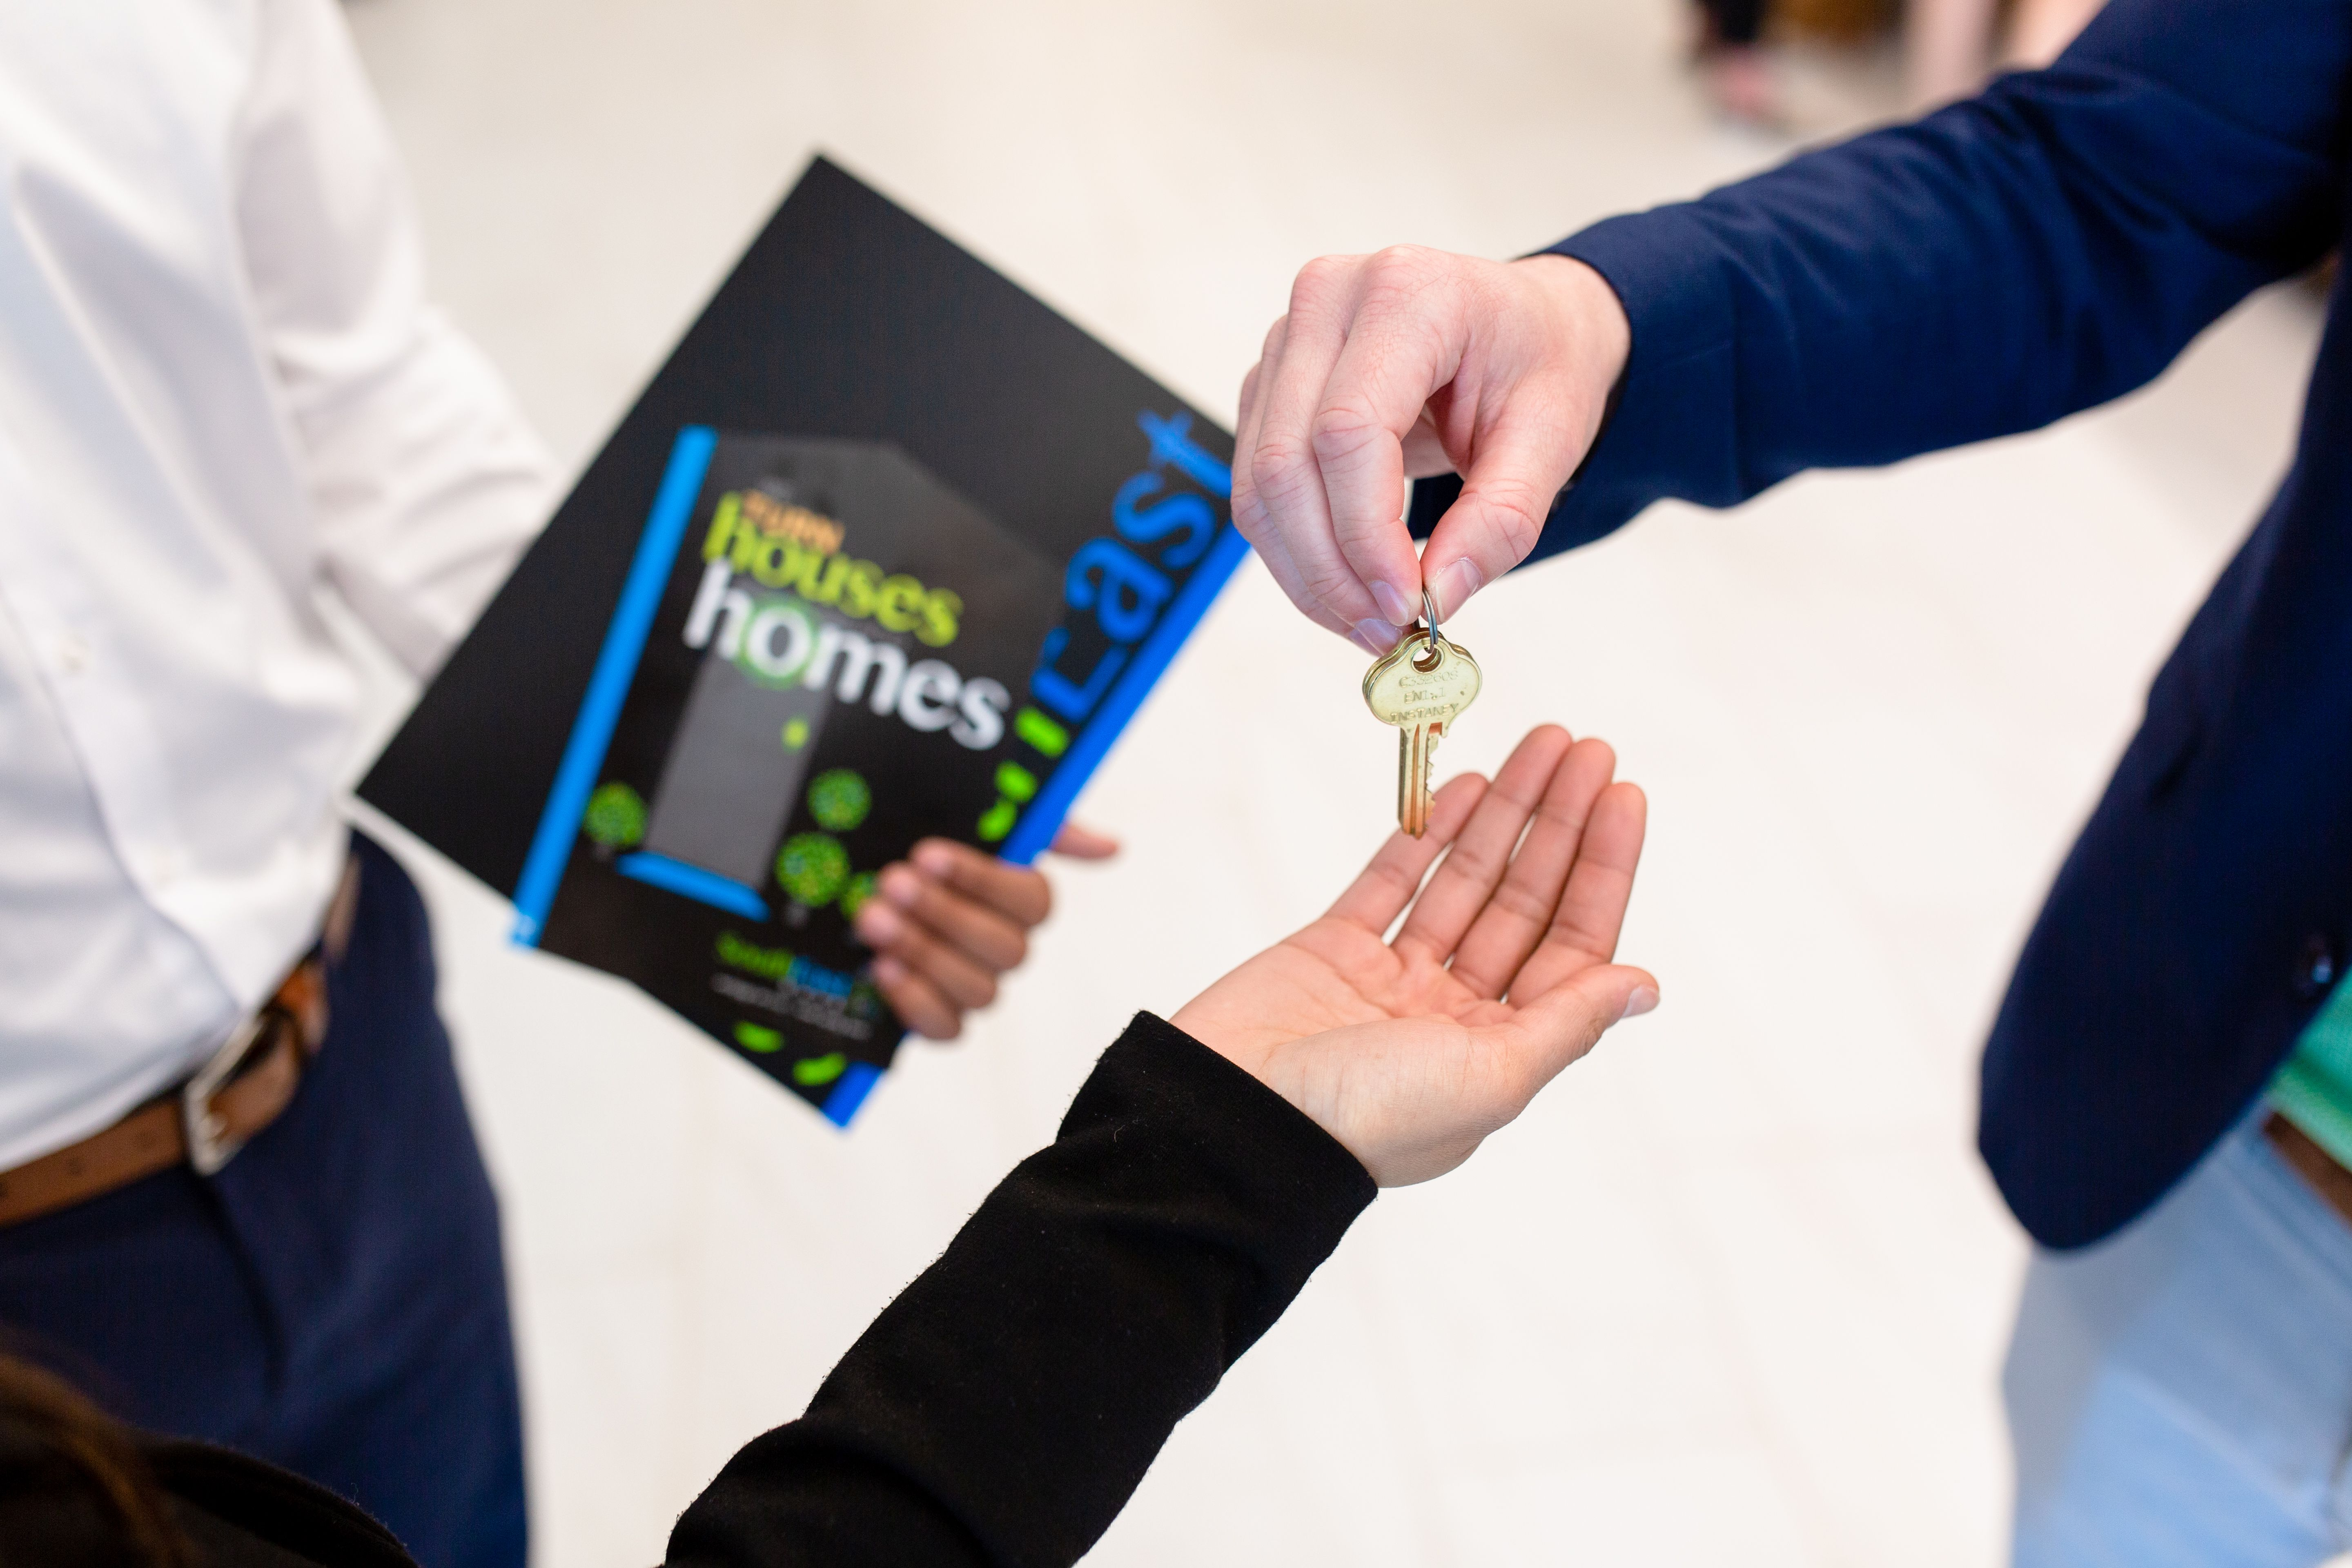 SouthEast Bank employee handing family keys to their new home